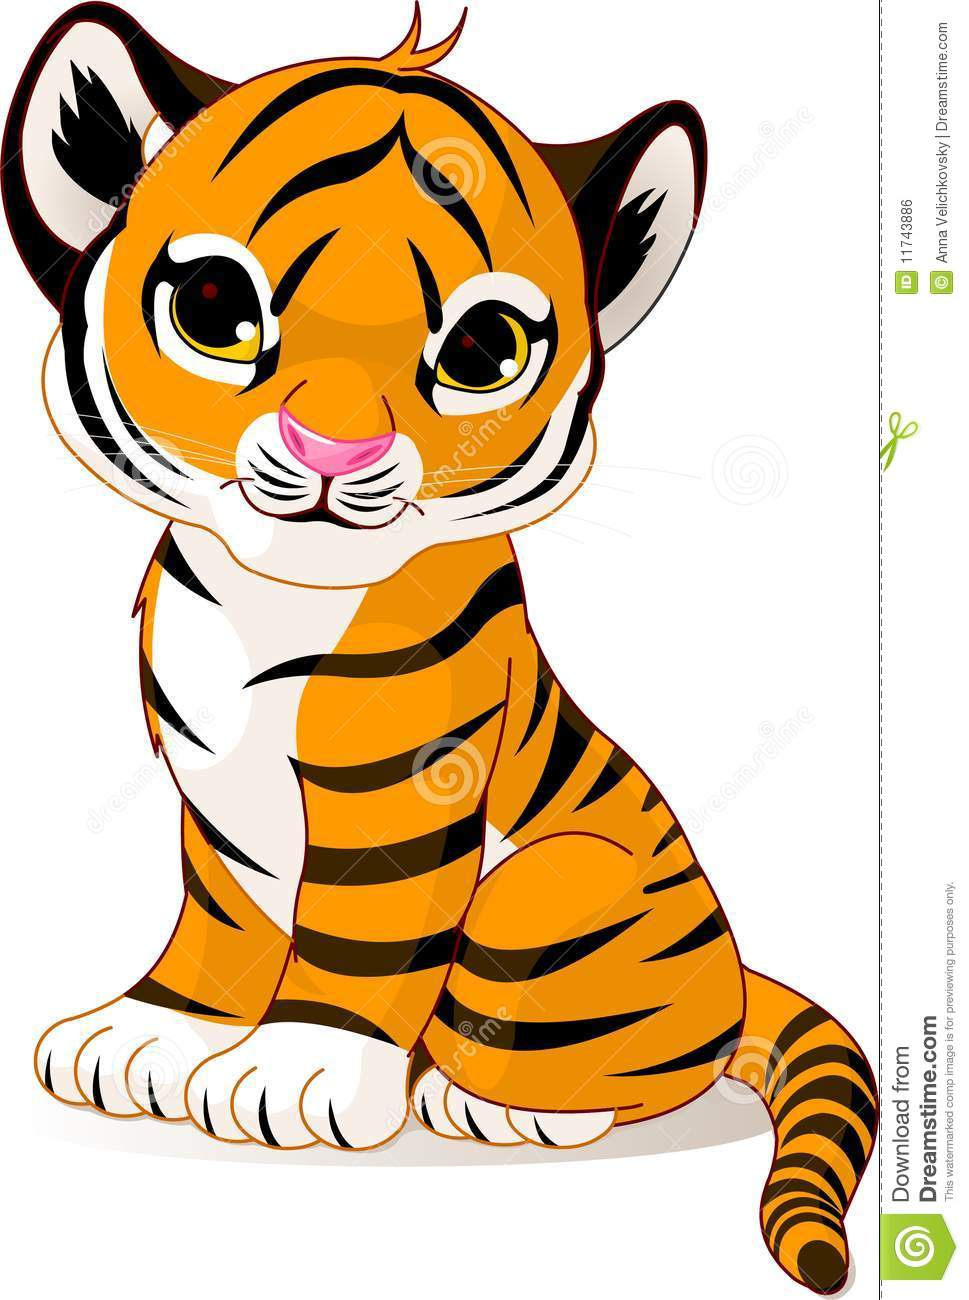 free tiger clipart at getdrawings com free for personal use free rh getdrawings com cute baby tiger clipart free cute baby tiger clipart free